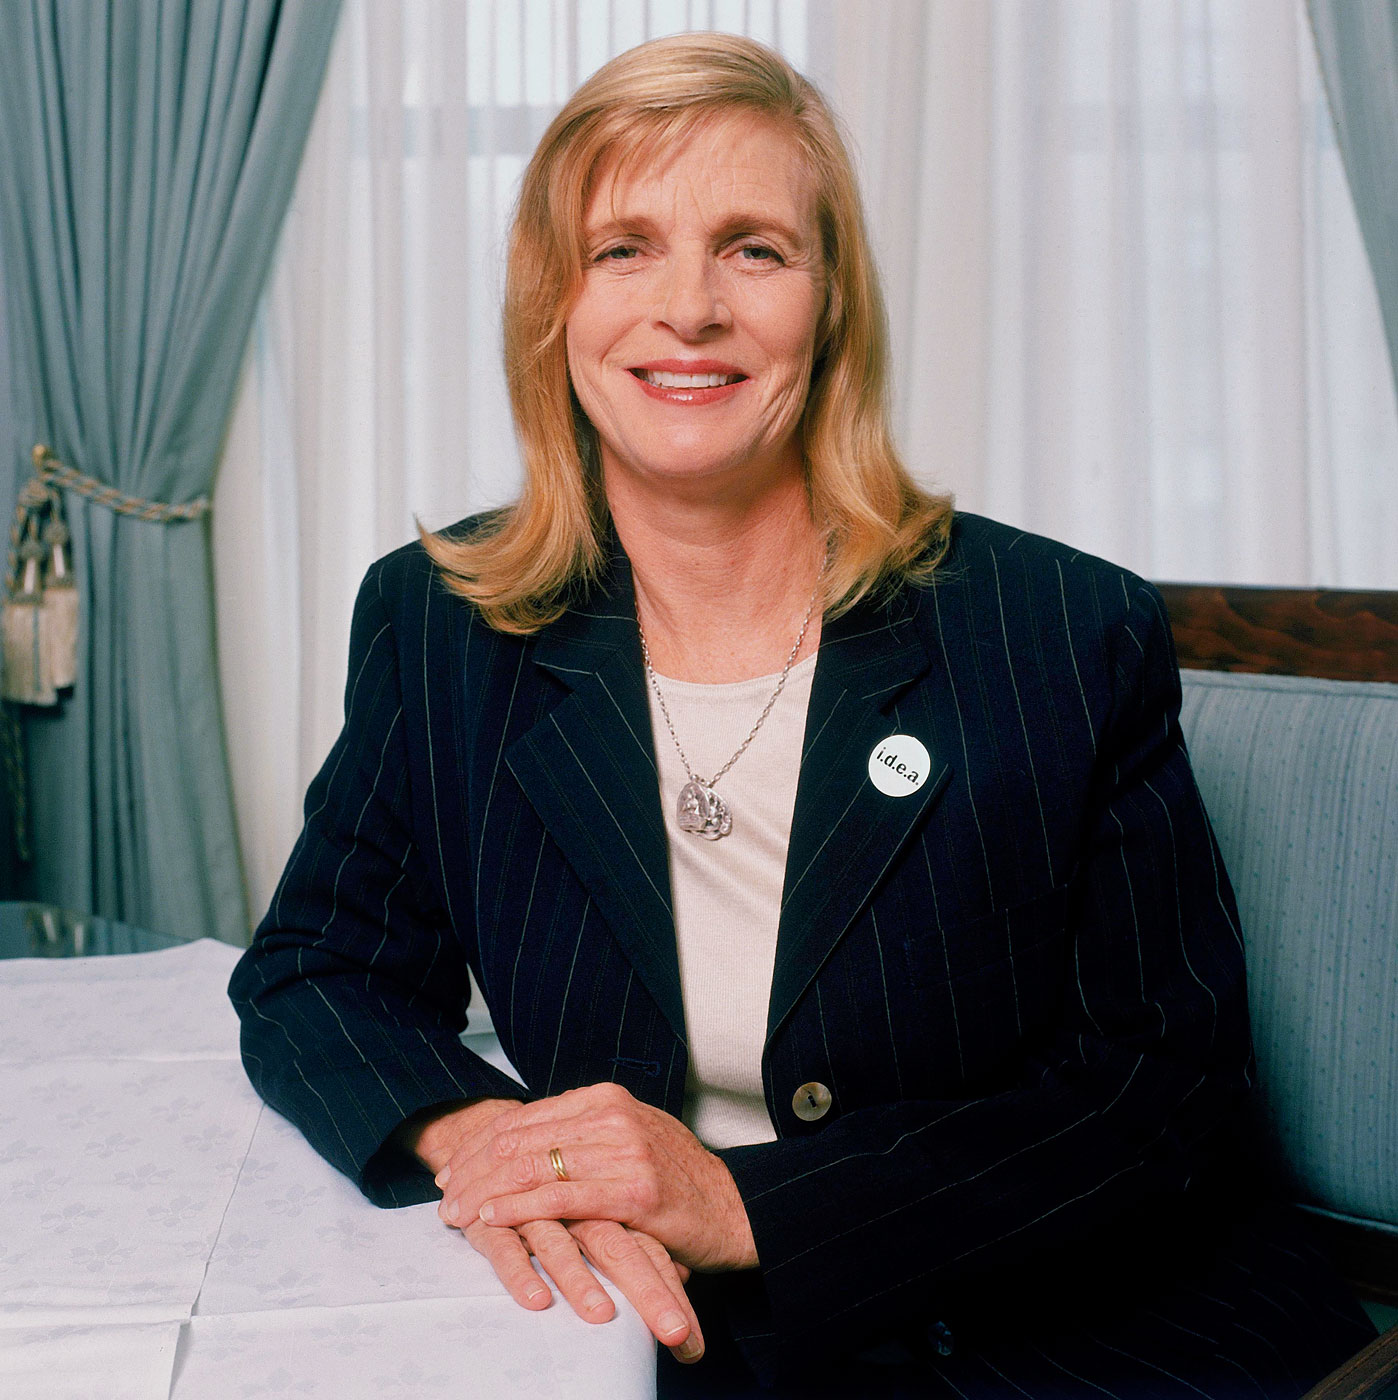 Linda McCartney                               Photographer, author, and animal-rights activist                               Diagnosed with breast cancer in 1995; died of the disease at age 56 in 1998